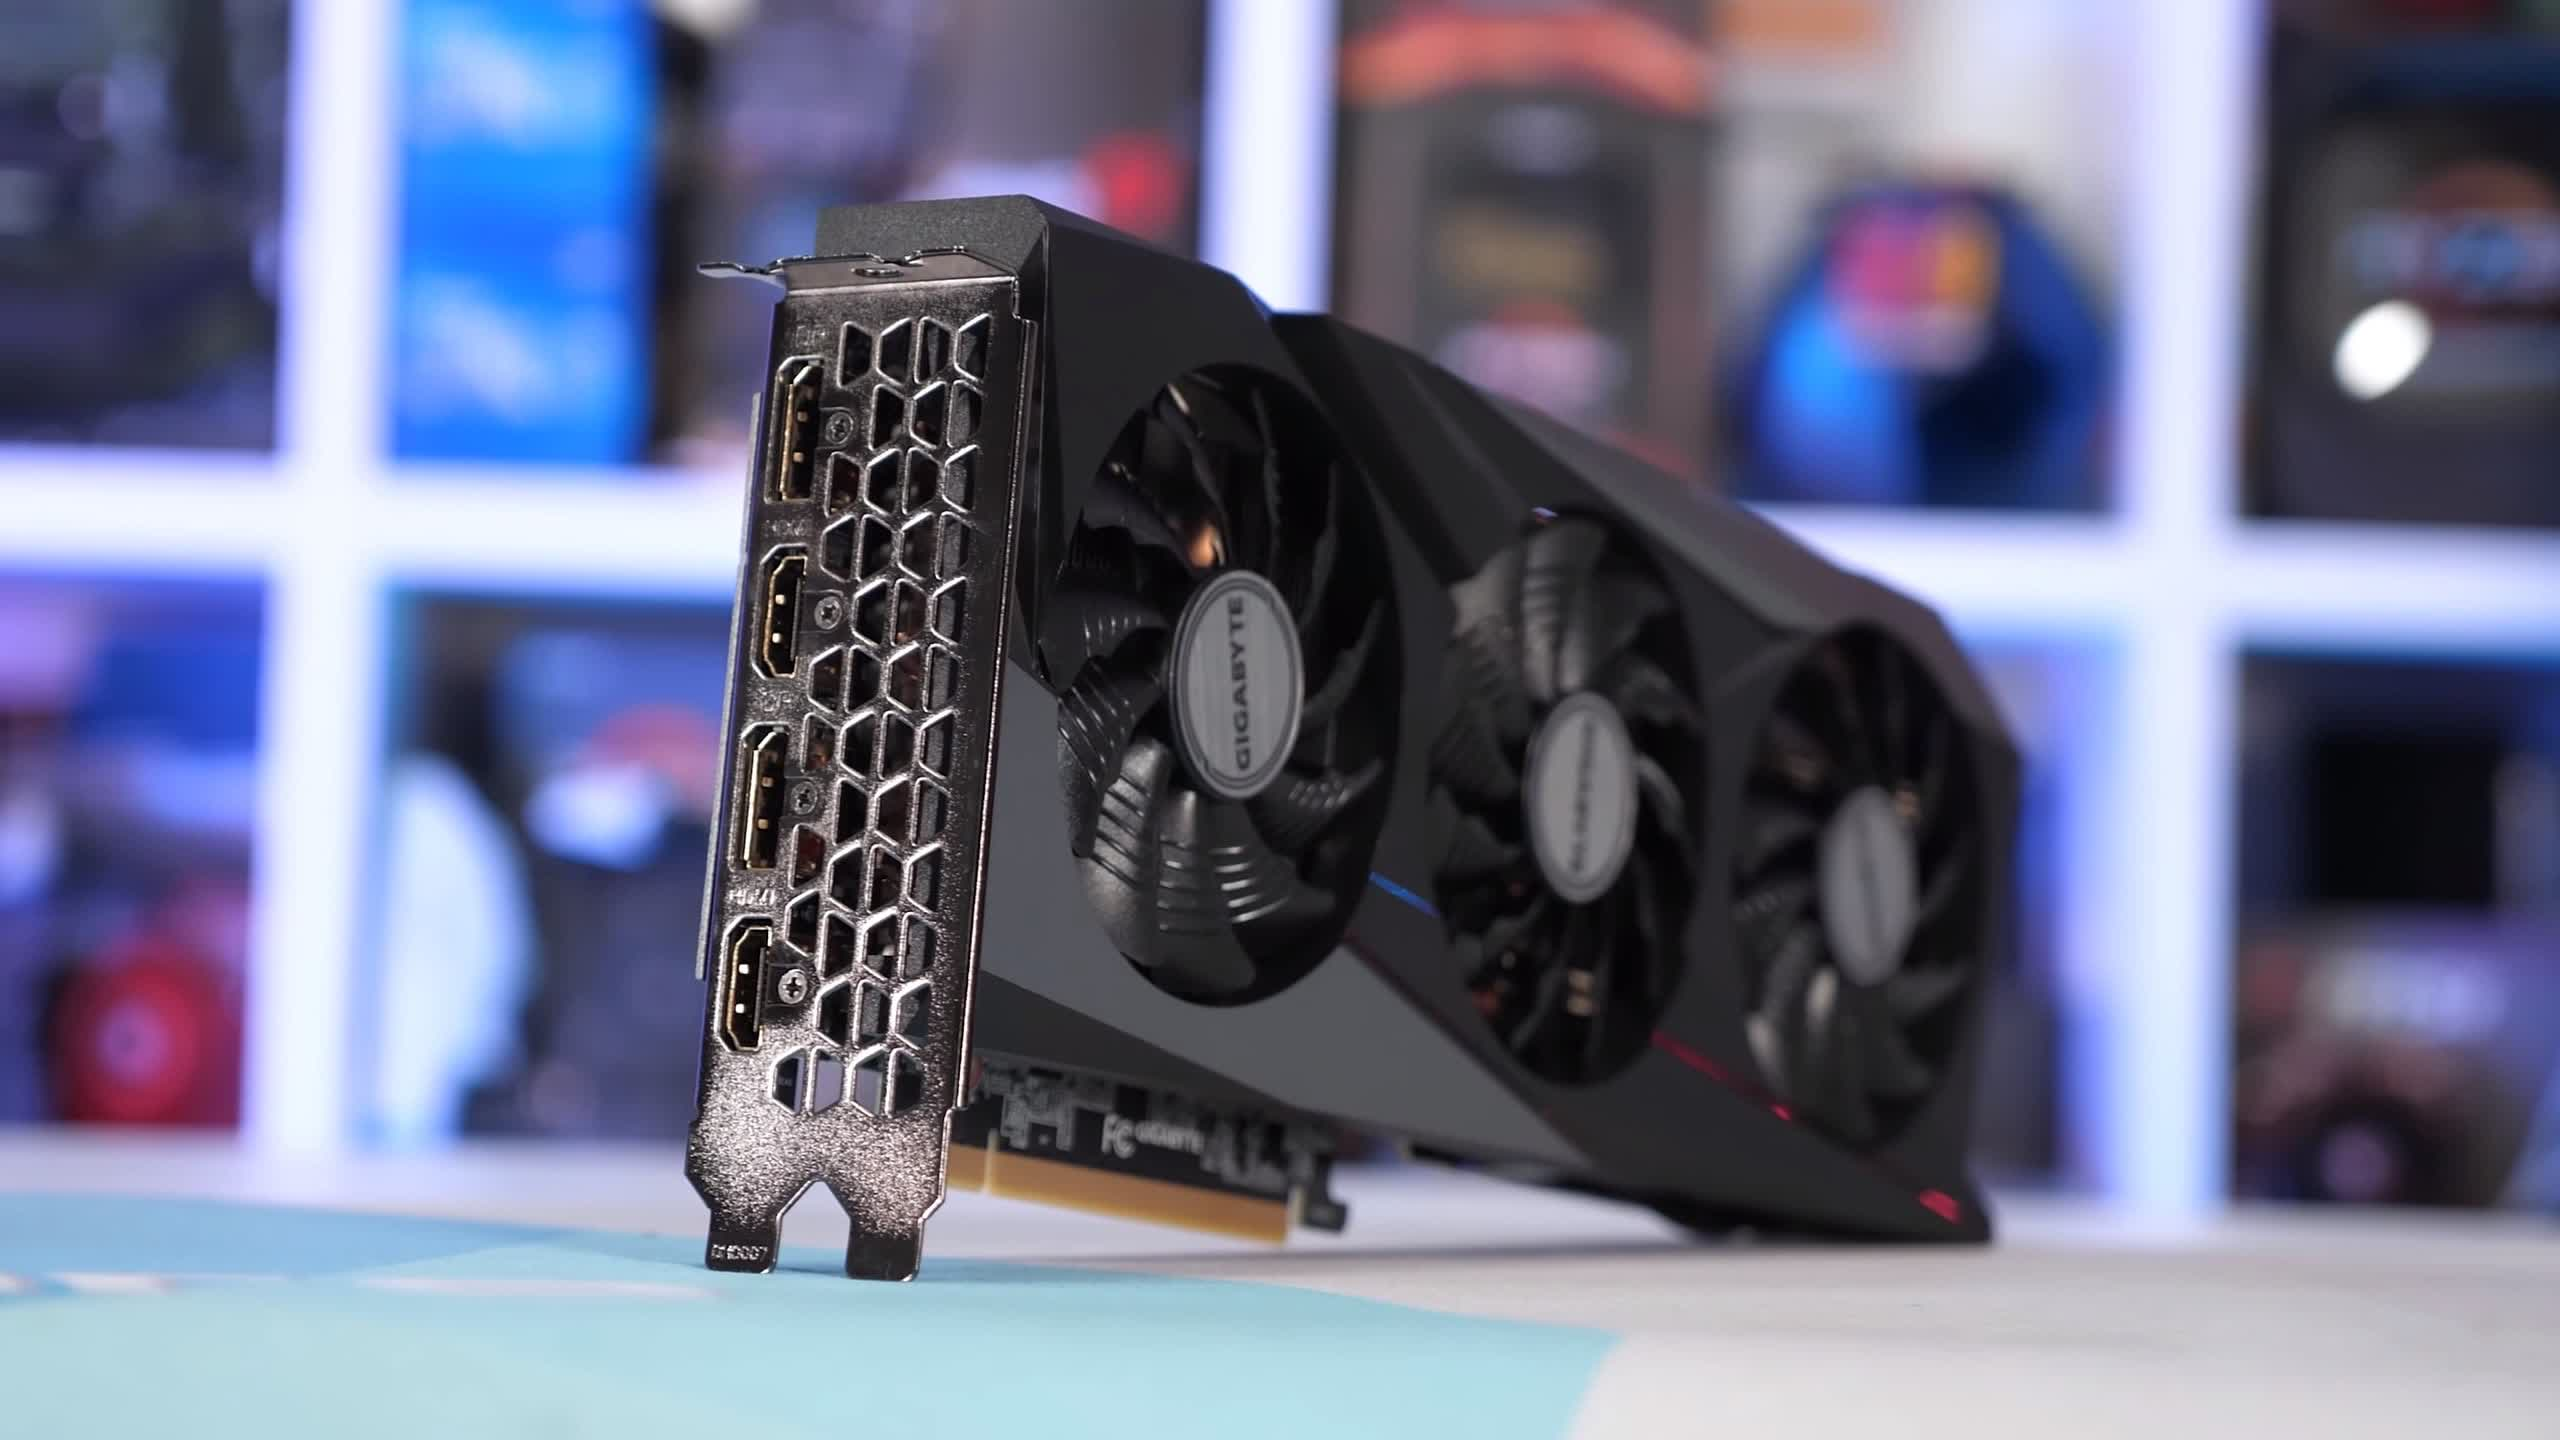 Nvidia RTX 3060 mines Ether at full power as miners allegedly bypass hash limits